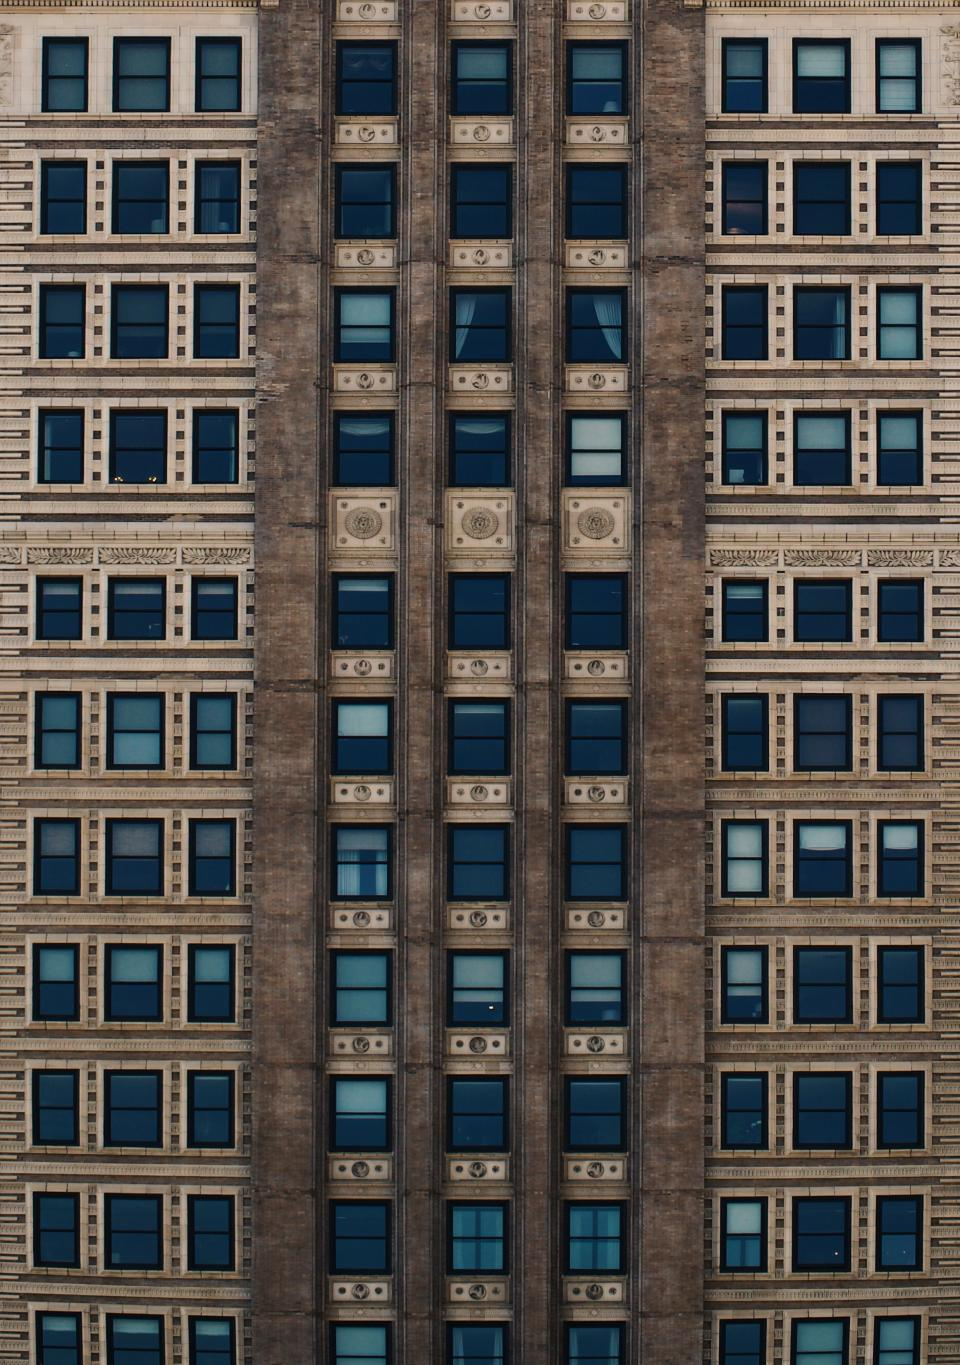 architecture building infrastructure structure establishment apartment windows condominium hotel